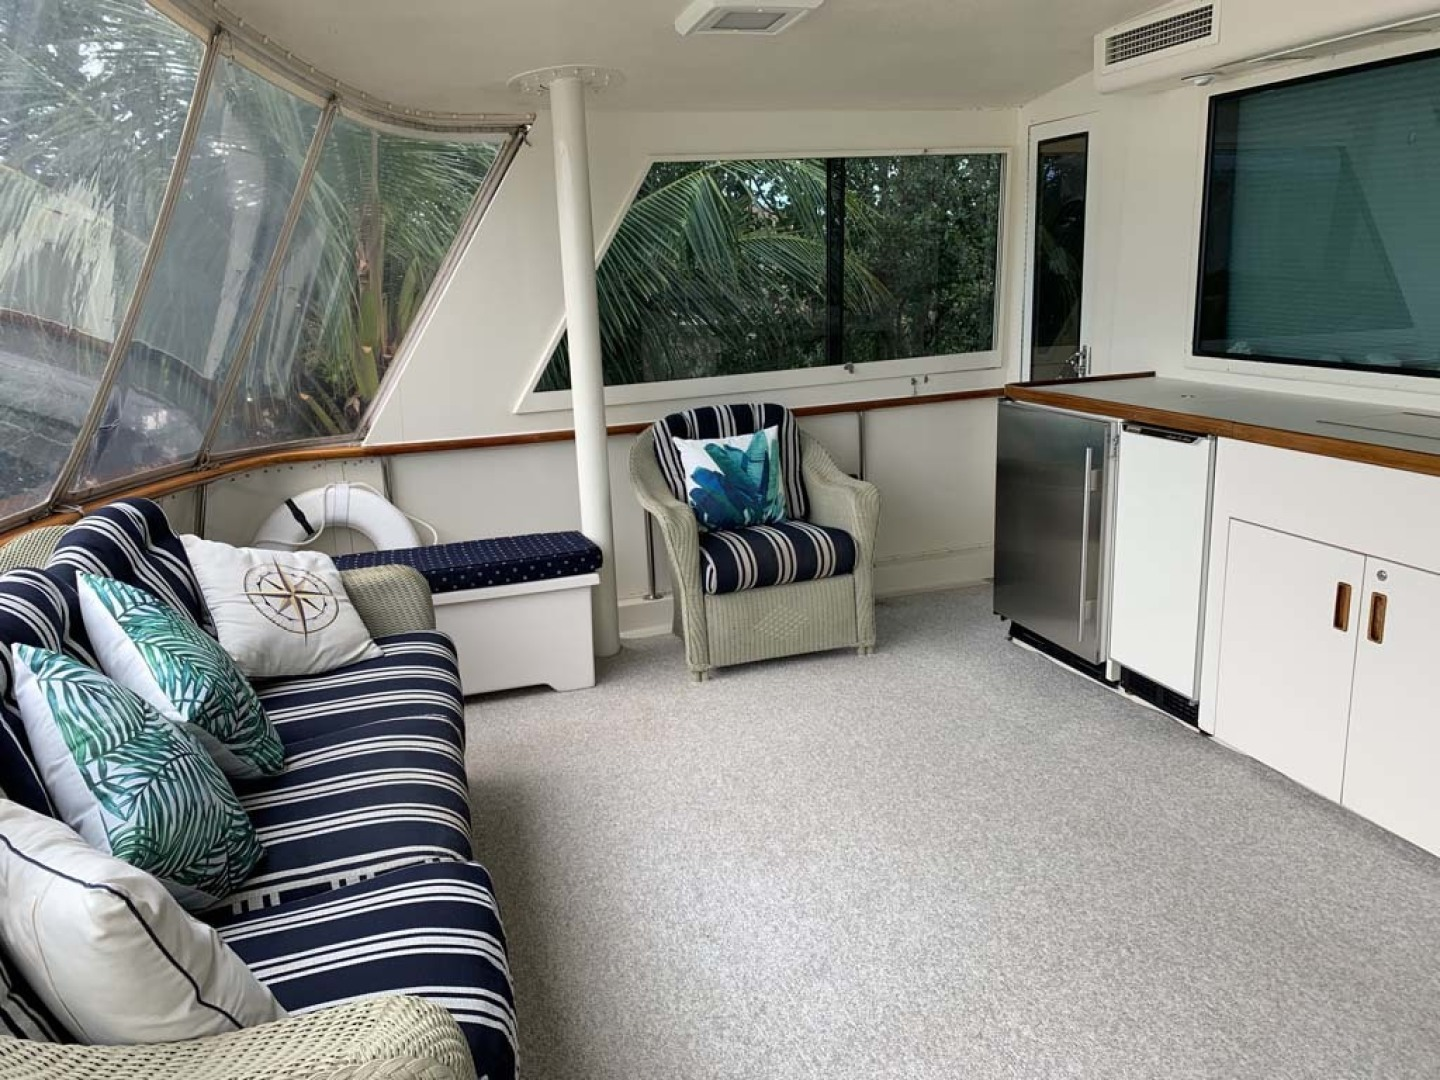 Hatteras-Euro Transom Motor Yacht 1989-Different Drummer II Stuart-Florida-United States-Aft Deck Window-1450014 | Thumbnail